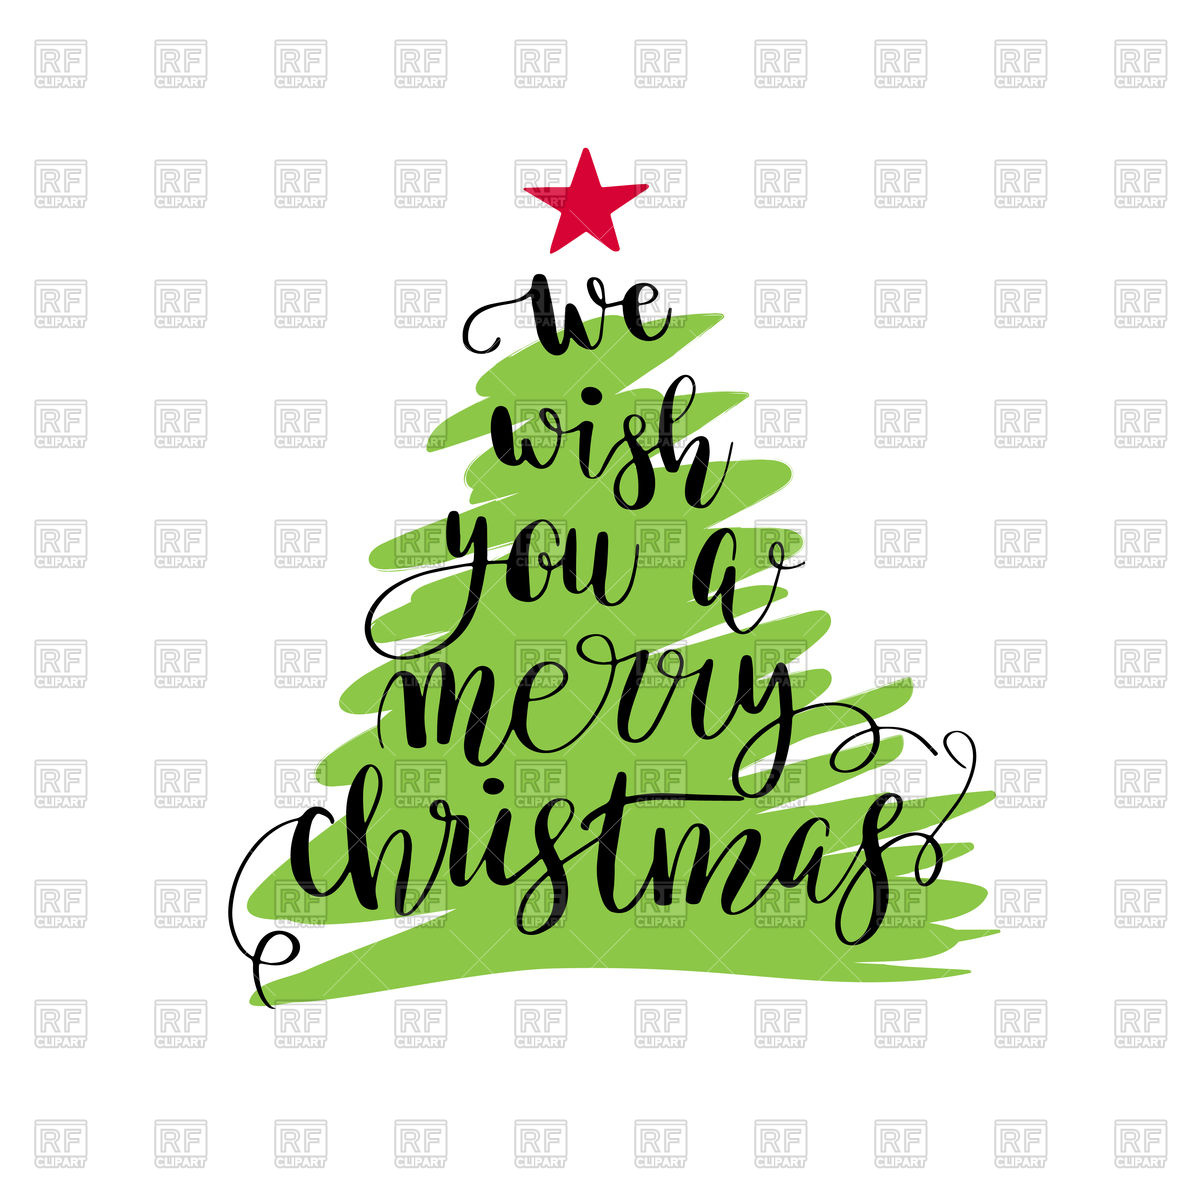 We Wish You A Merry Christmas Lyrics.Download We Wish You A Merry Christmas Audio Lyrics